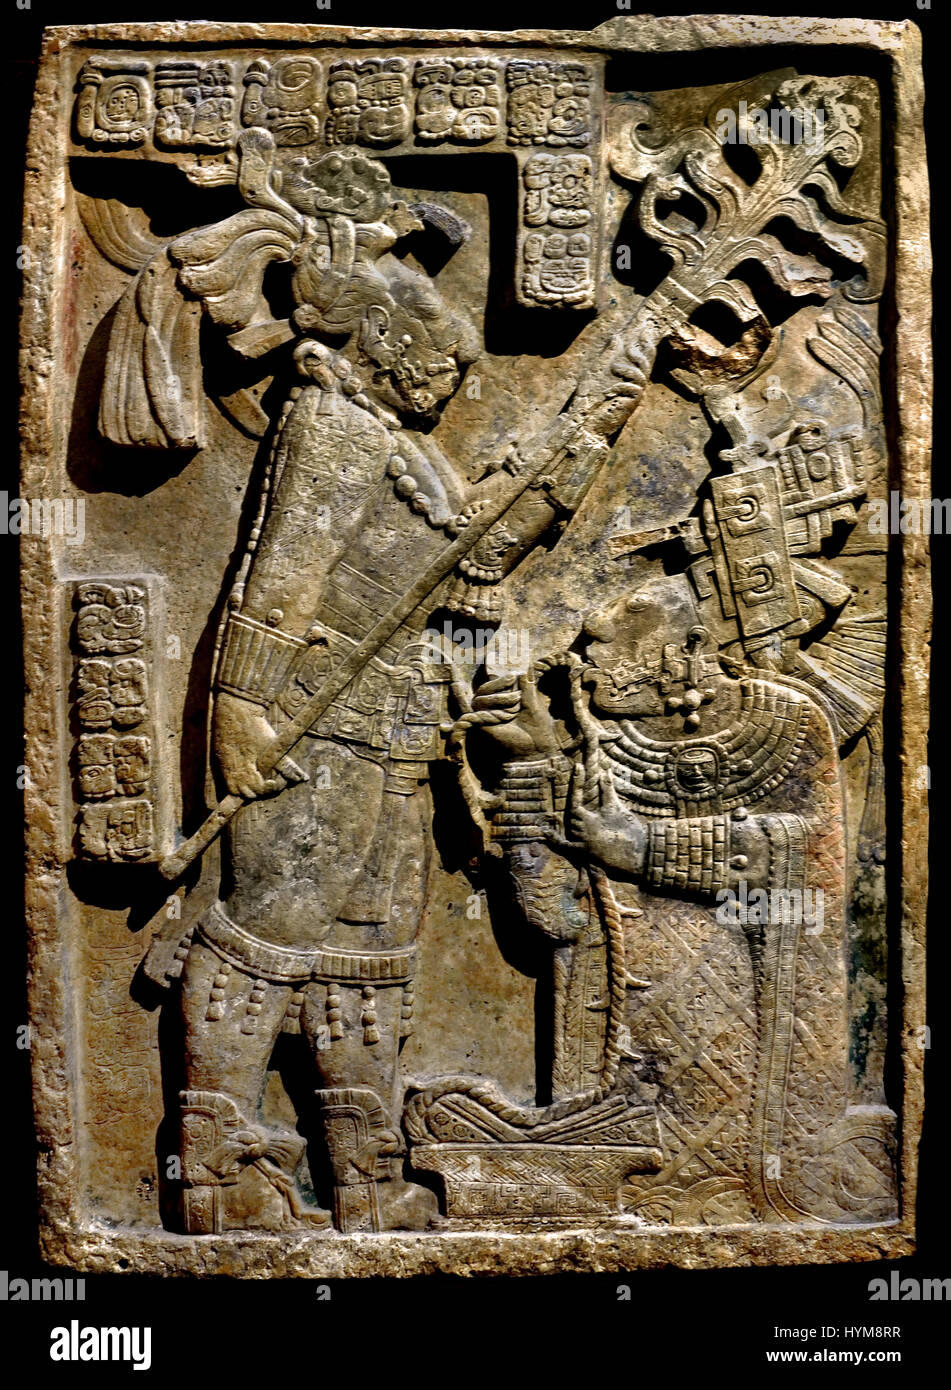 The Yaxchilan Lintels - Lintel 24 Bloodletting ritual performed by the king of Yaxchilan, Shield Jaguar II and his Stock Photo